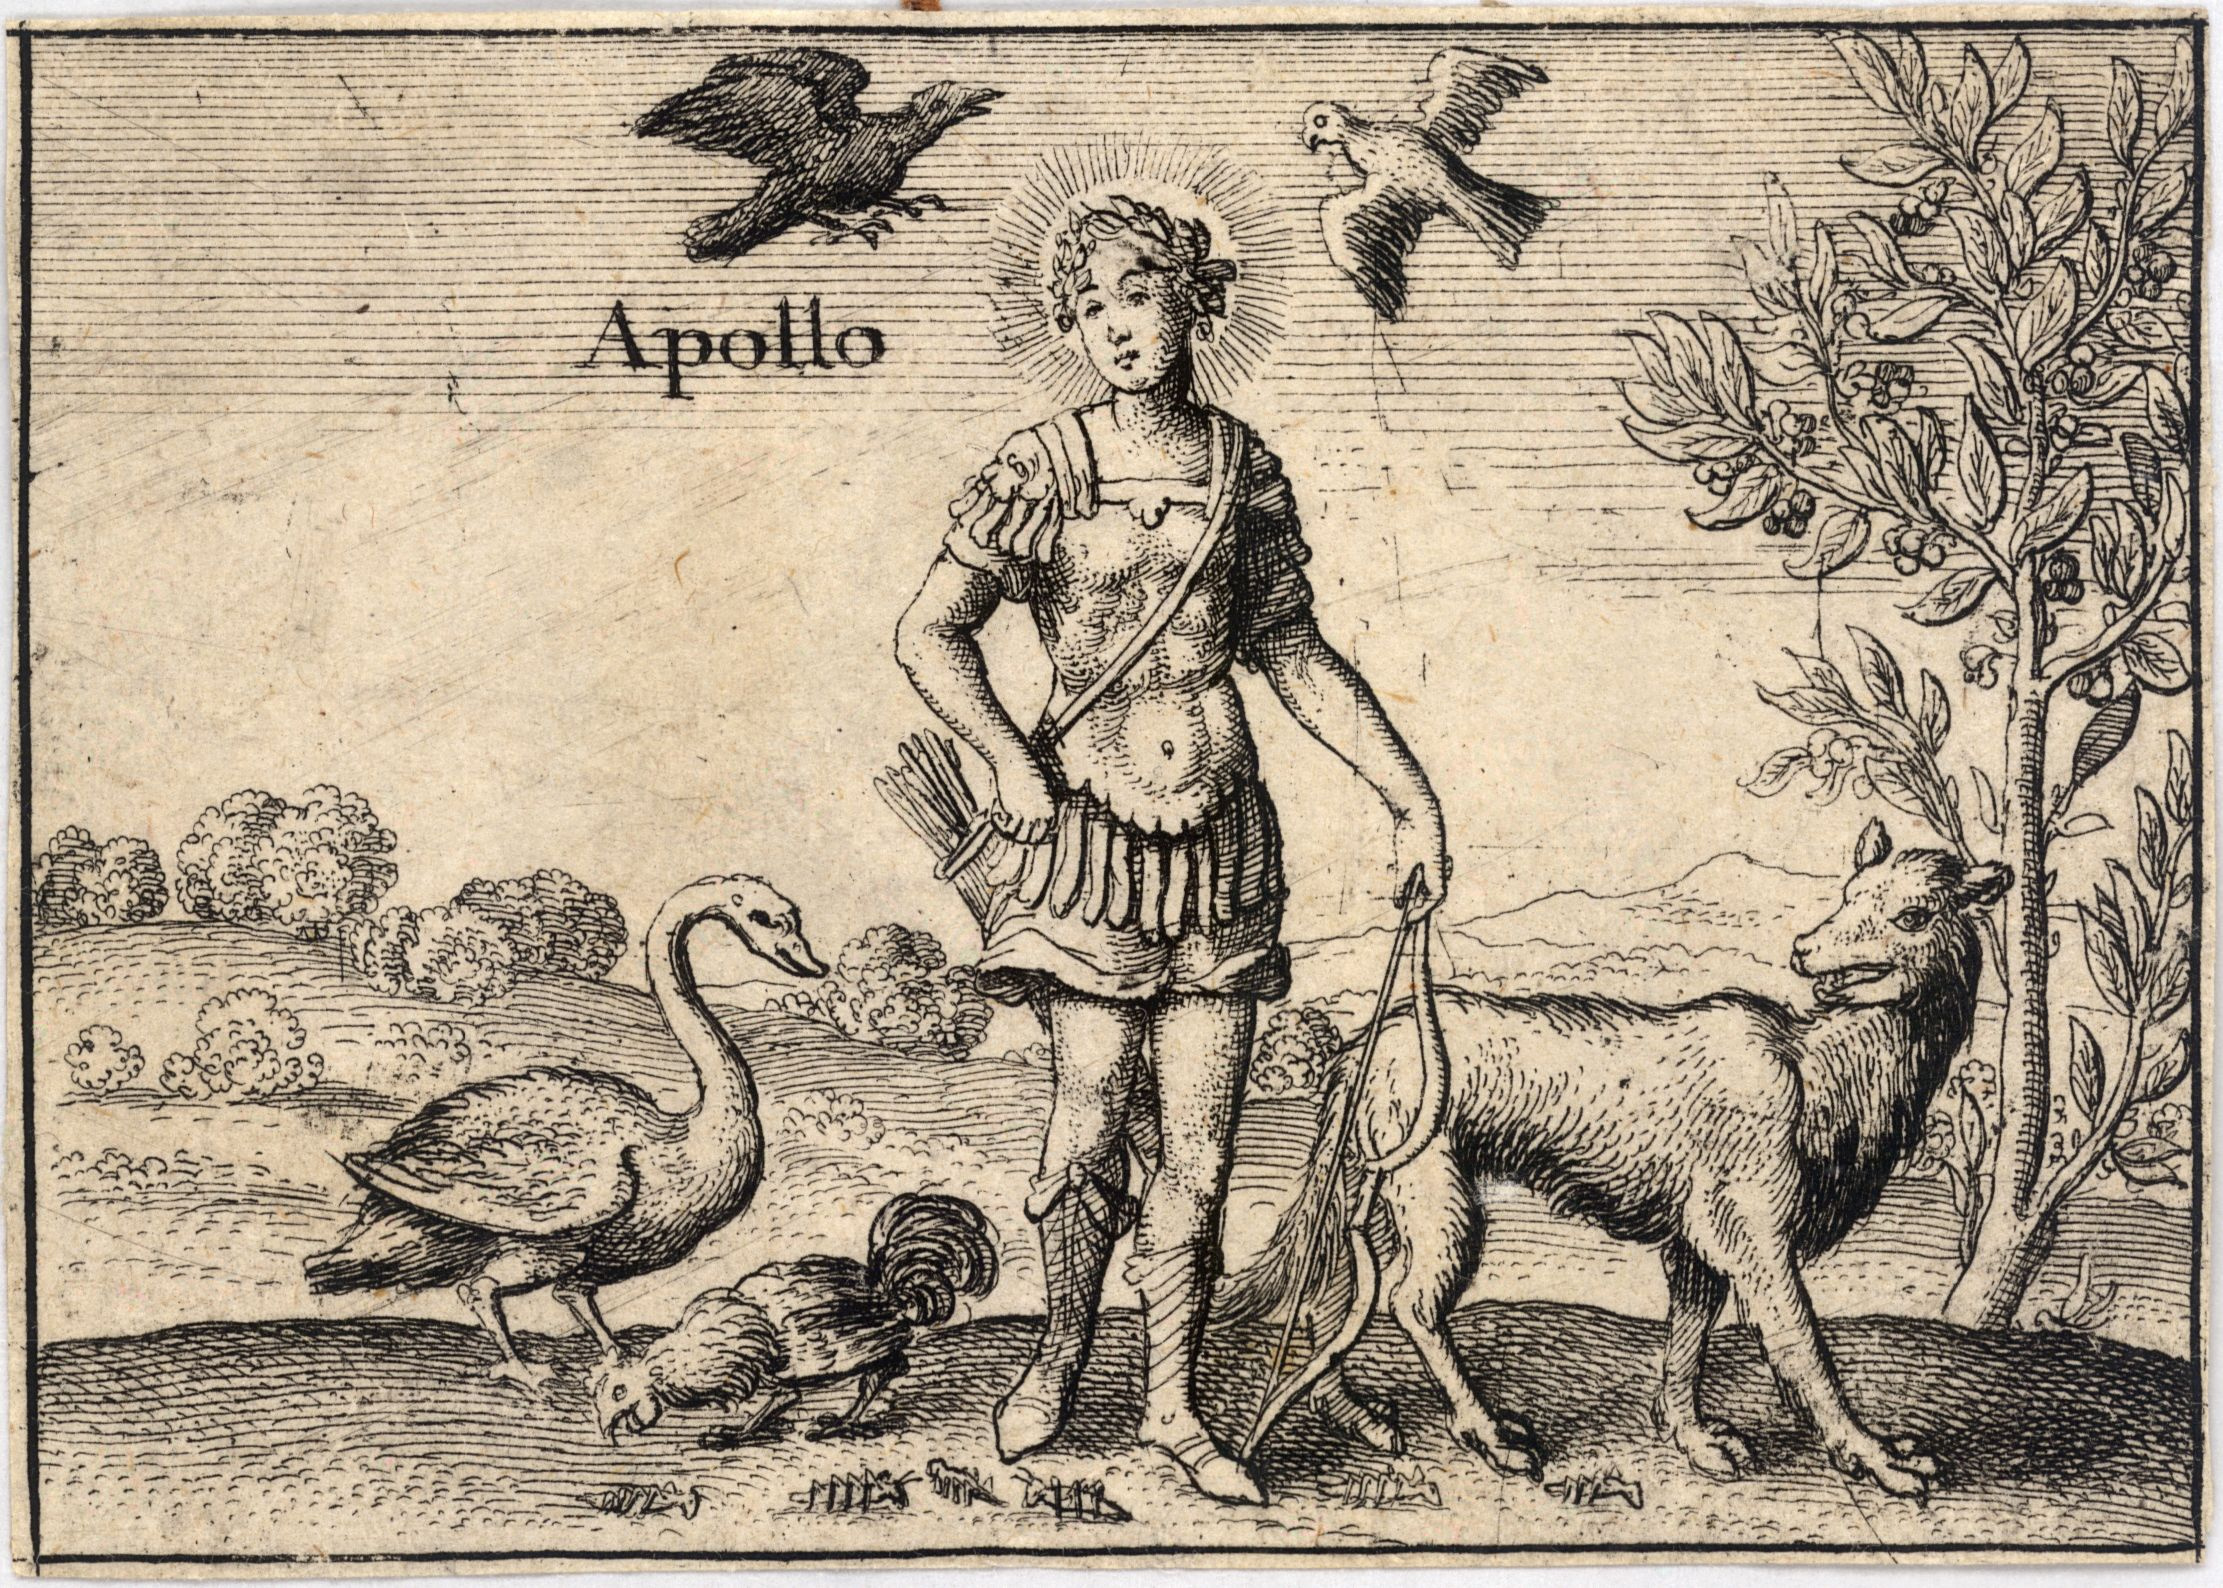 the greek god apollo Discover the myths surrounding apollo, the greek god of the sun, medicine and music, aka phoebus apollo he had the gift of prophecy and was strongly associated with healing he was a patron of the arts and his lyre symbolized music, poetry and dance.